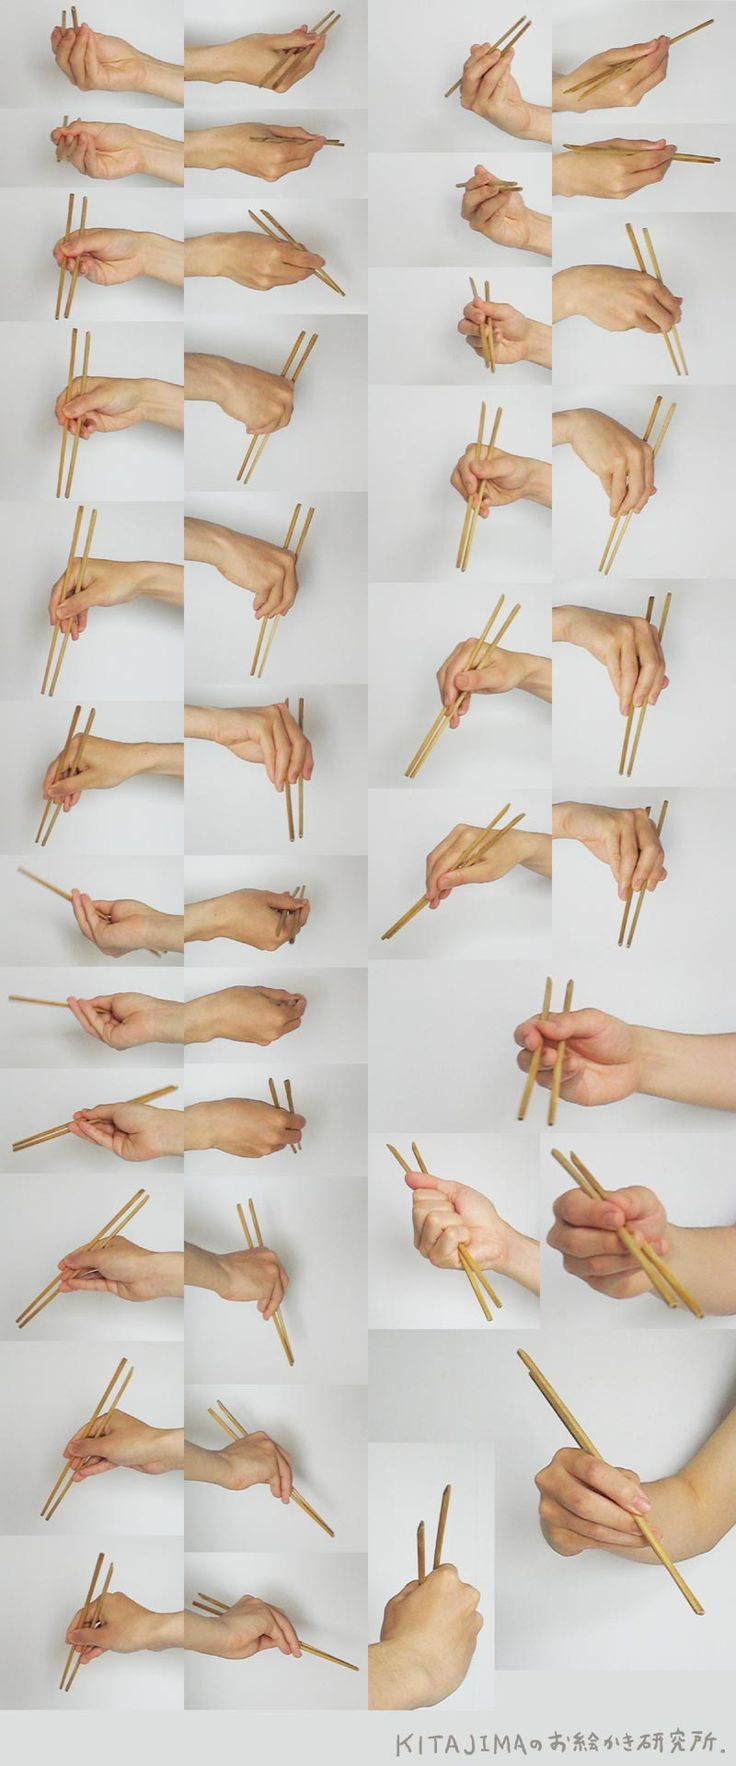 Use chopsticks with right hand